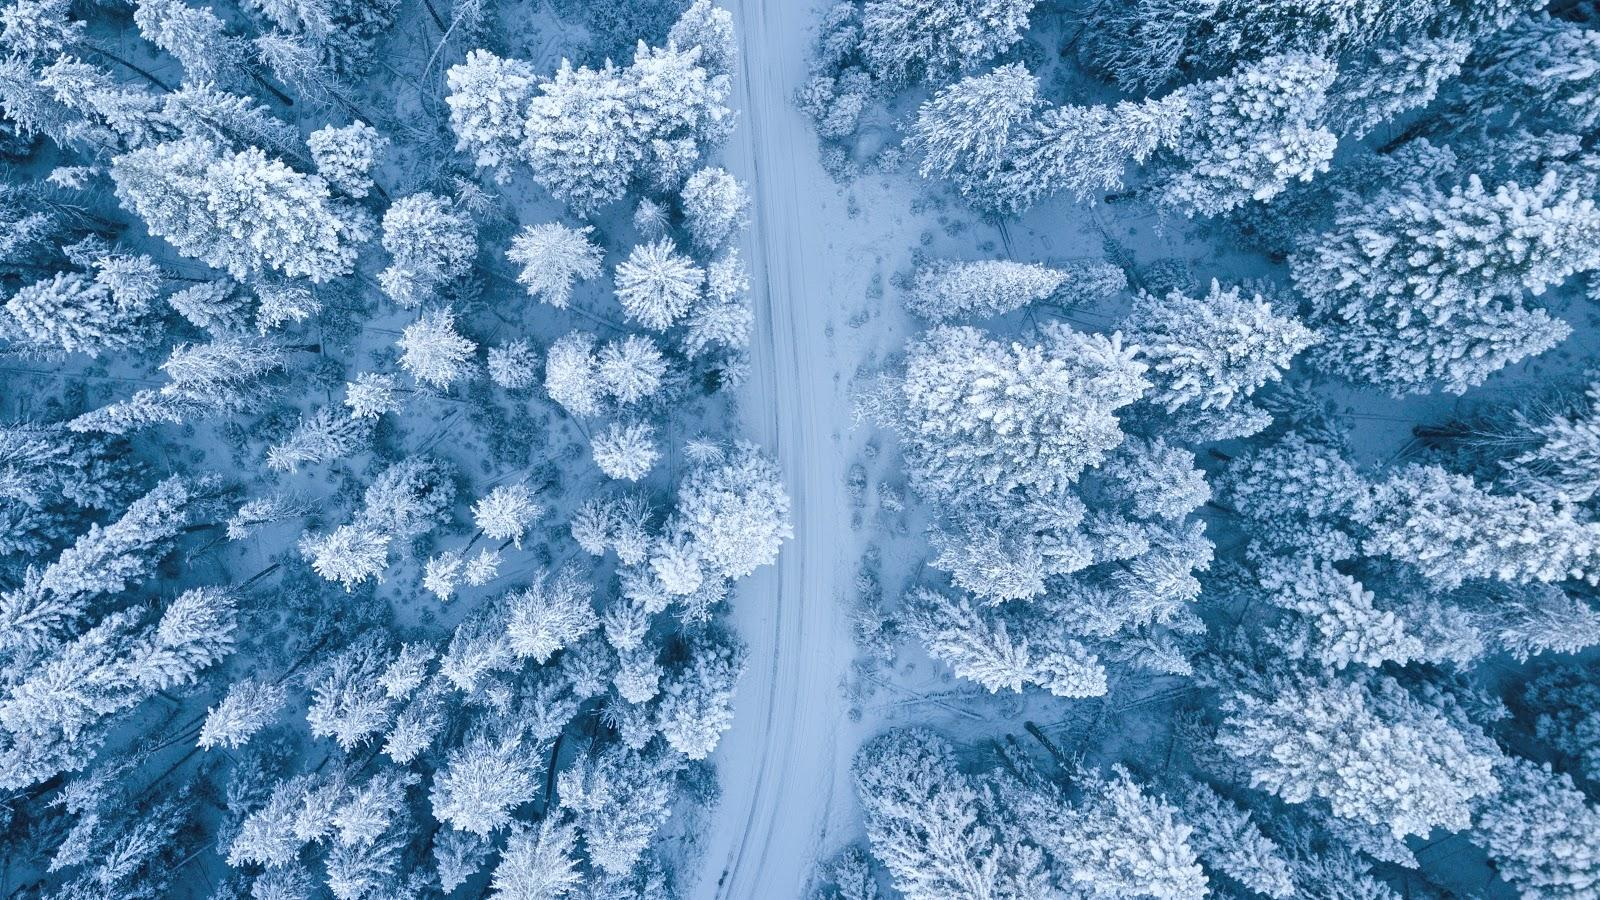 drone photography of a road and the surrounding snow forest